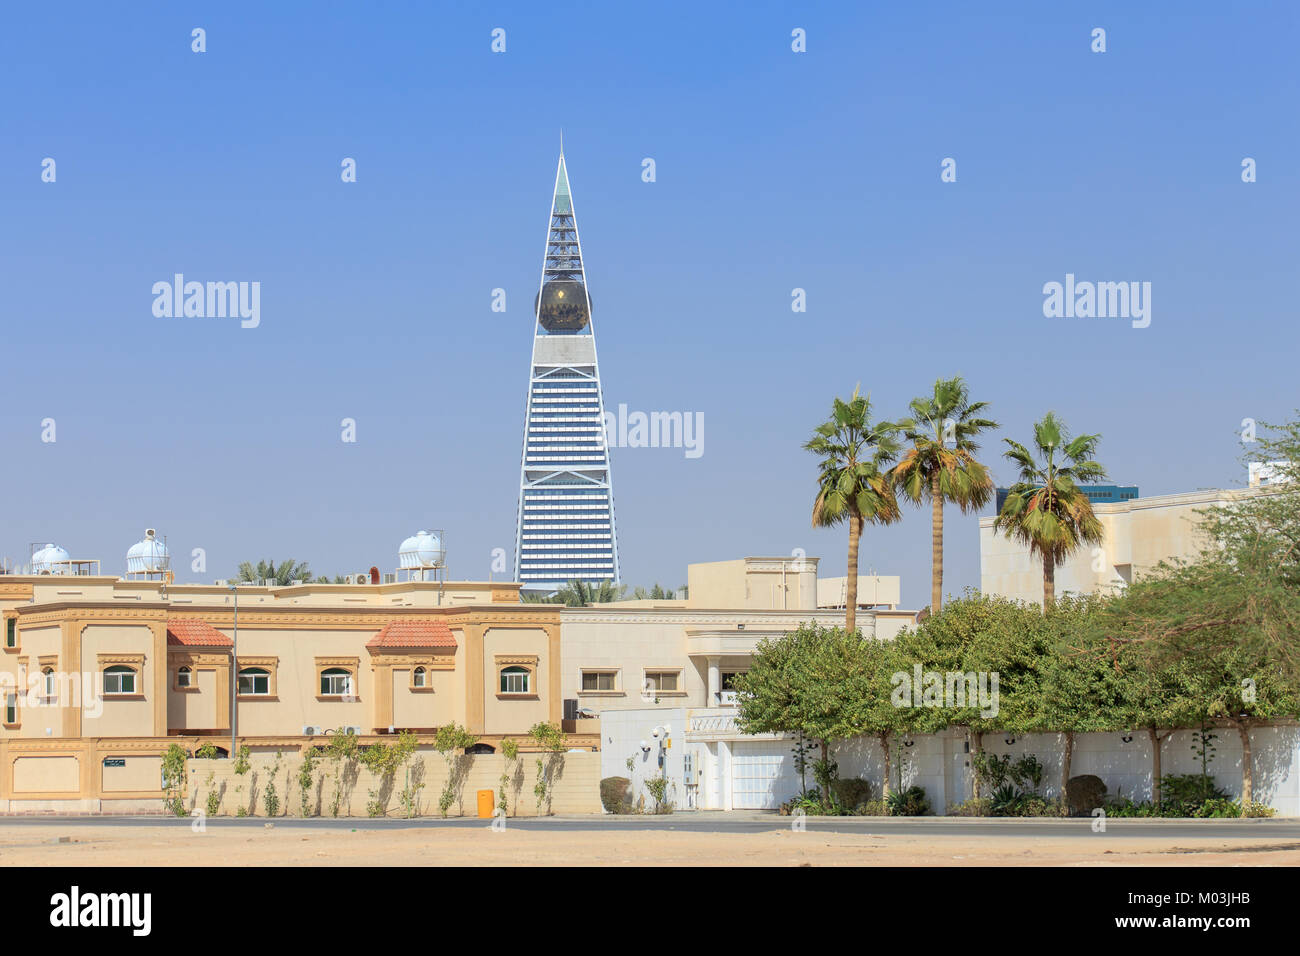 Cityscape of Riyadh in Saudi Arabia - Stock Image